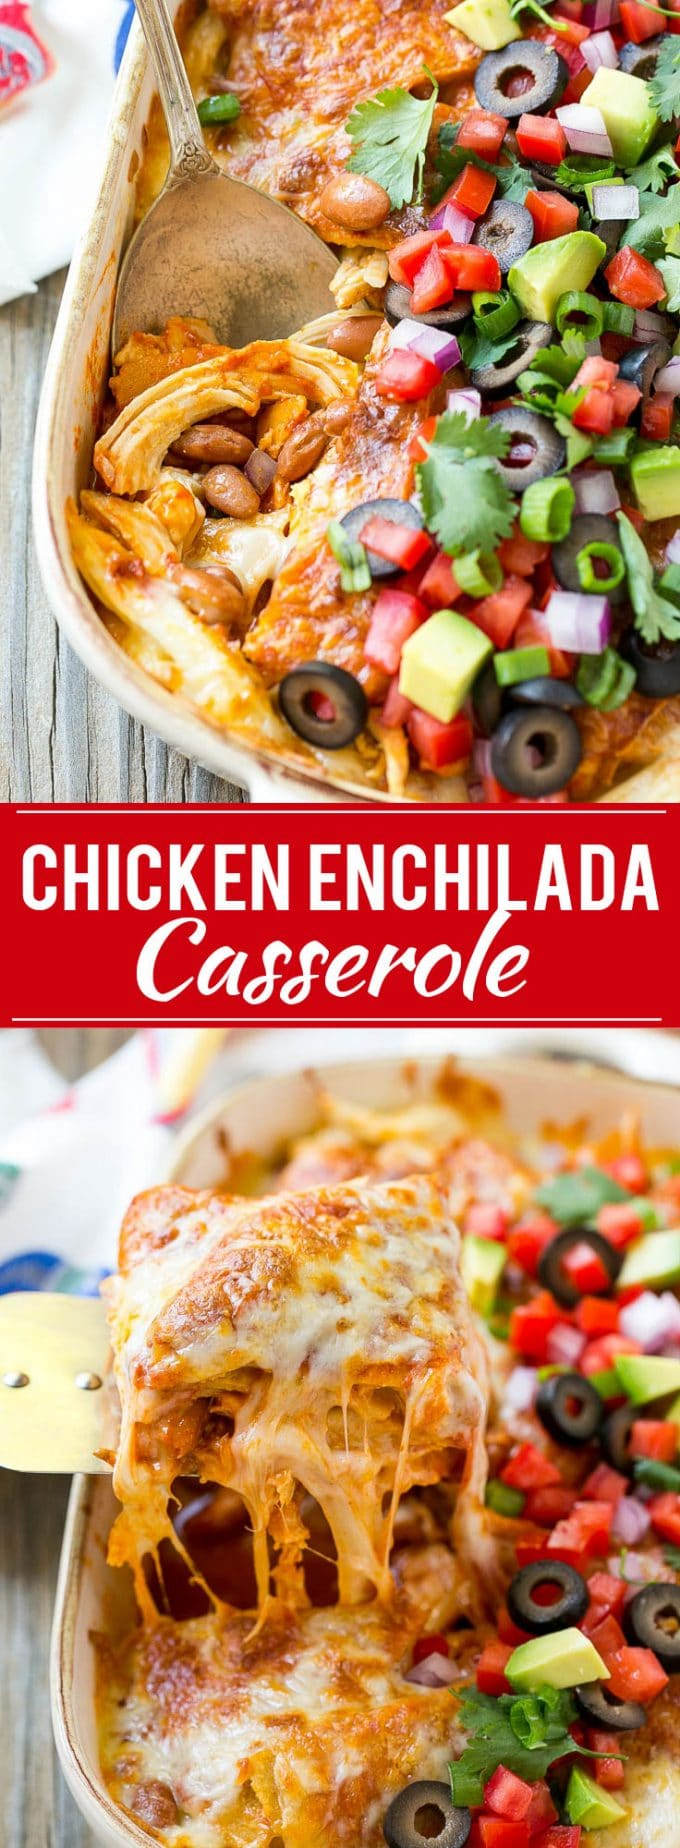 Chicken Enchilada Casserole Recipe | Chicken Enchiladas | Easy Casserole Recipe | Enchilada Casserole #chicken #casserole #enchiladas #cheese #beans #dinner #dinneratthezoo